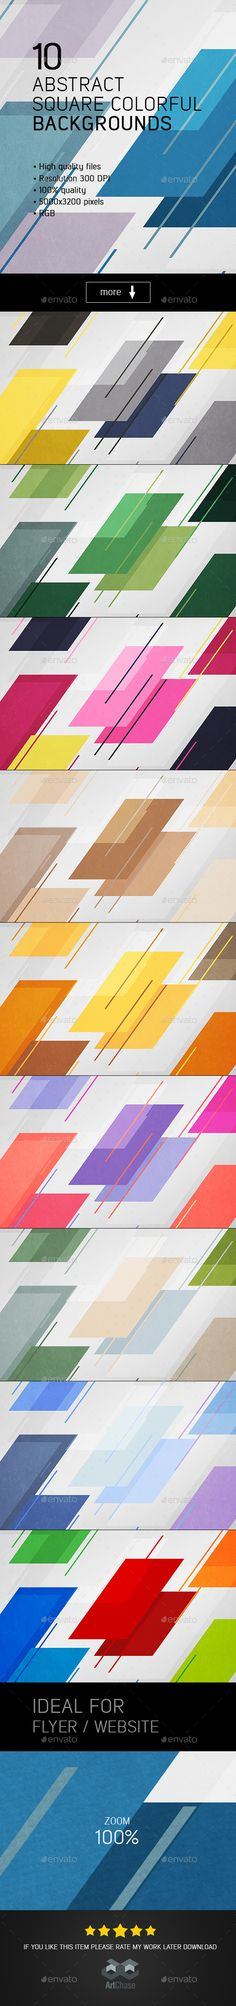 Abstract Square Colorful Backgrounds